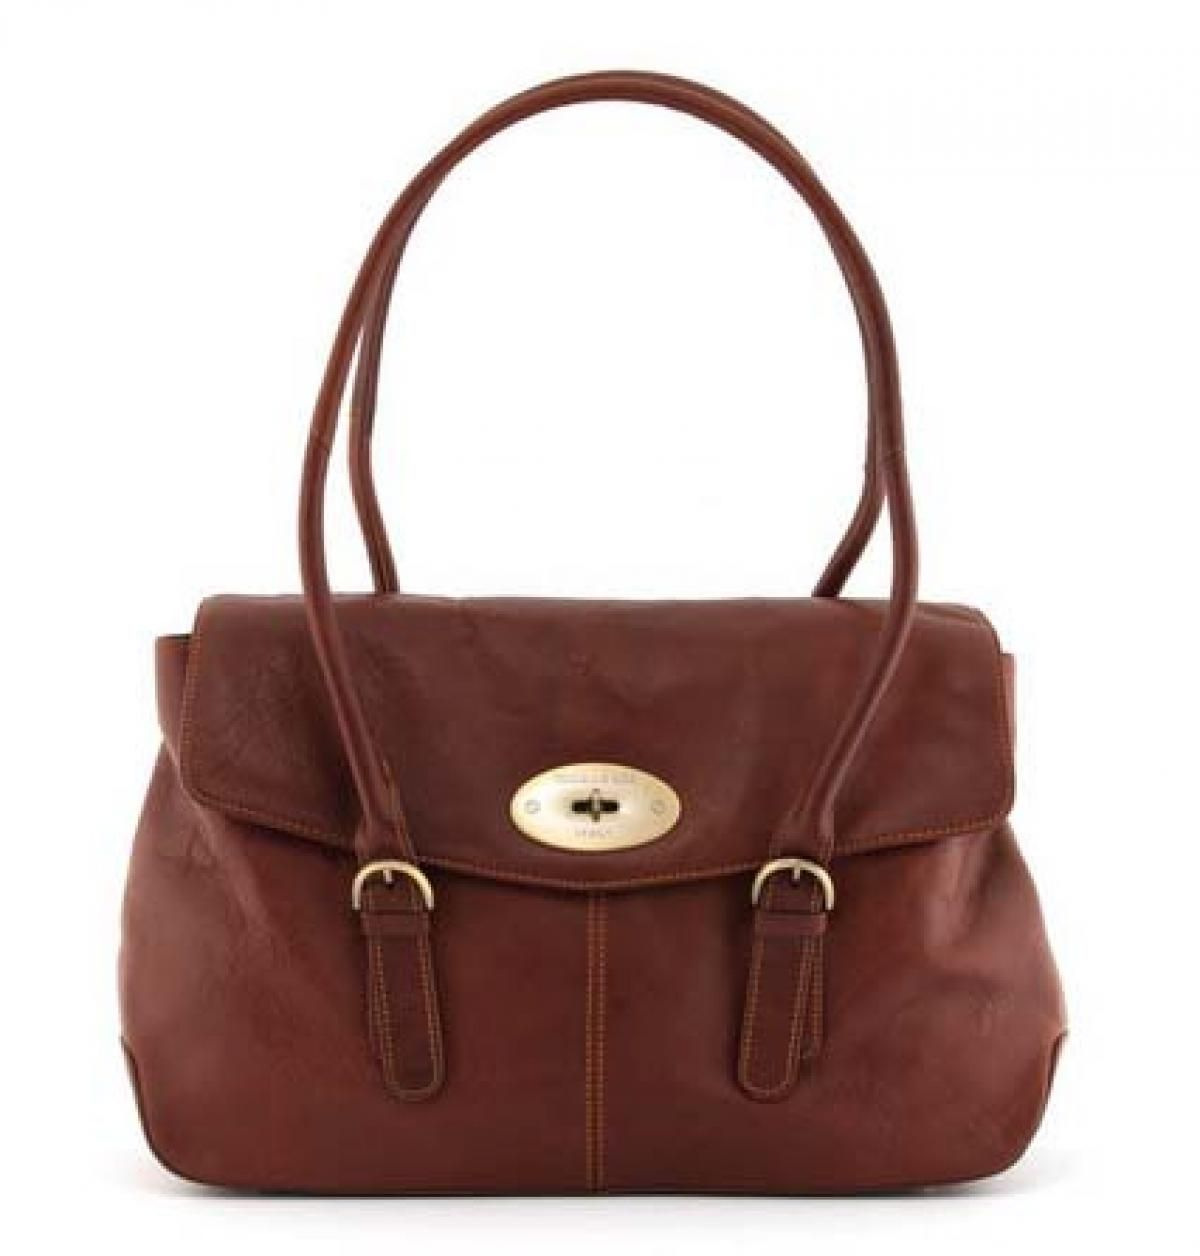 c0e96079b Tumble and Hide Handbag Verona Tote Bag Brown | Accessories | Bags ...